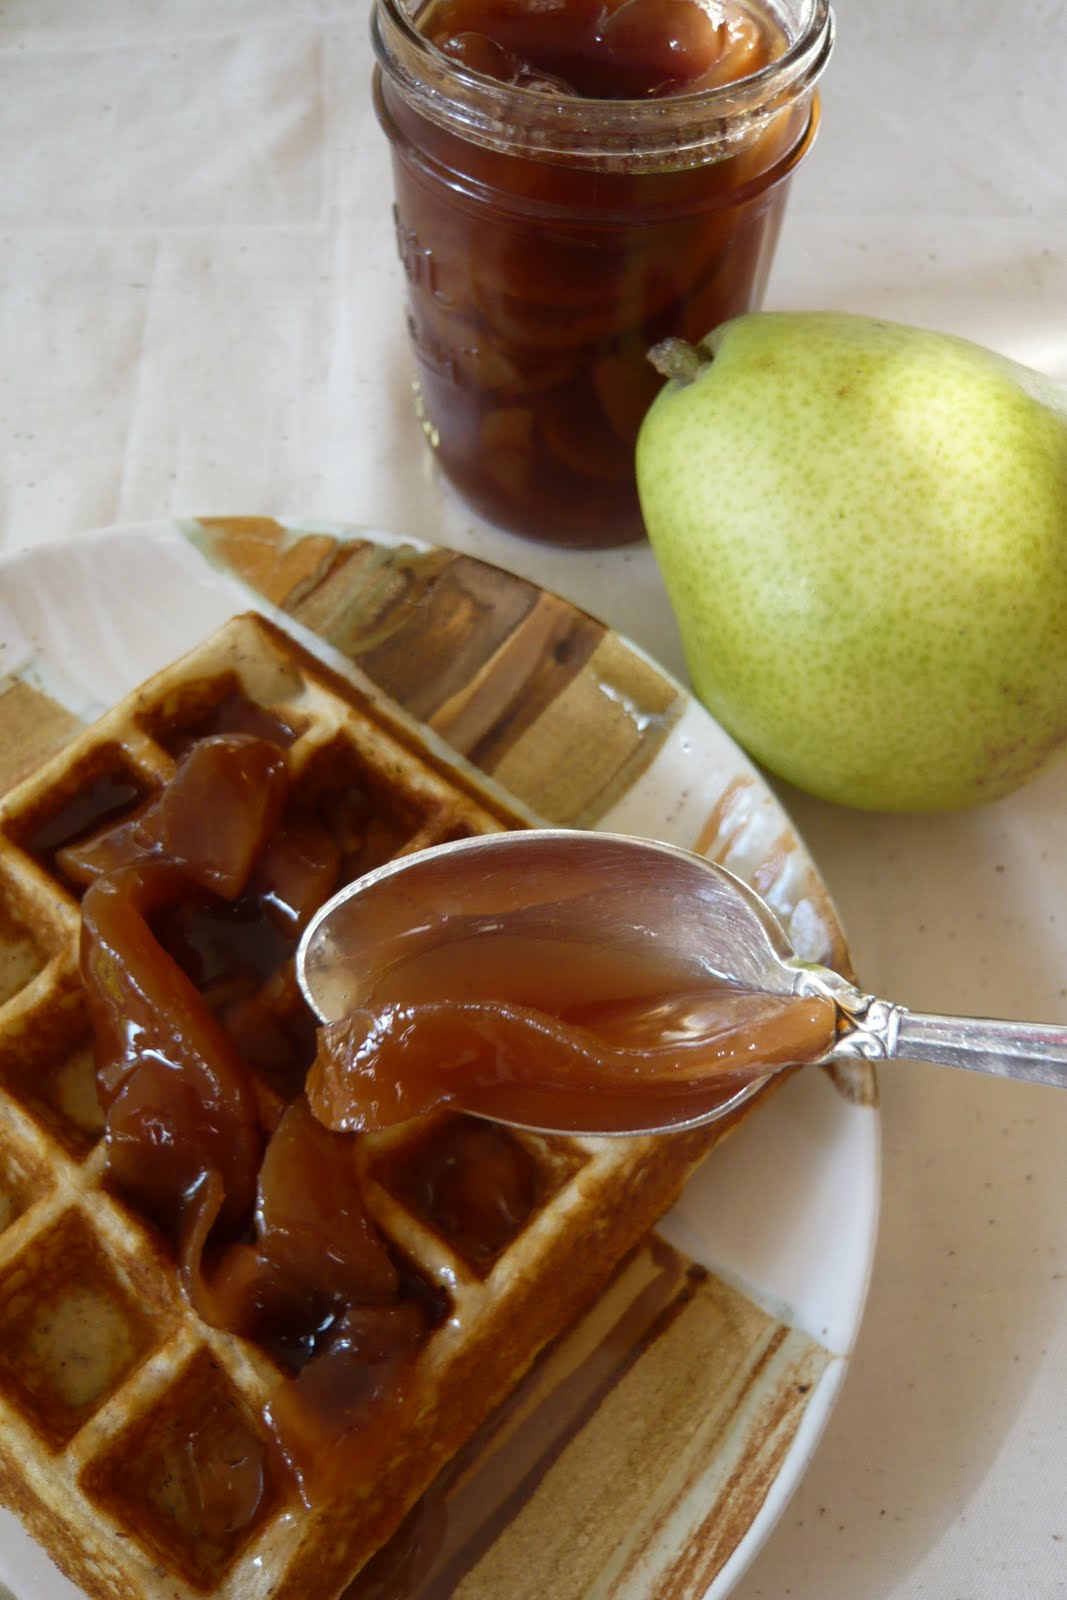 The most delicious pear jam: cooking with love 4